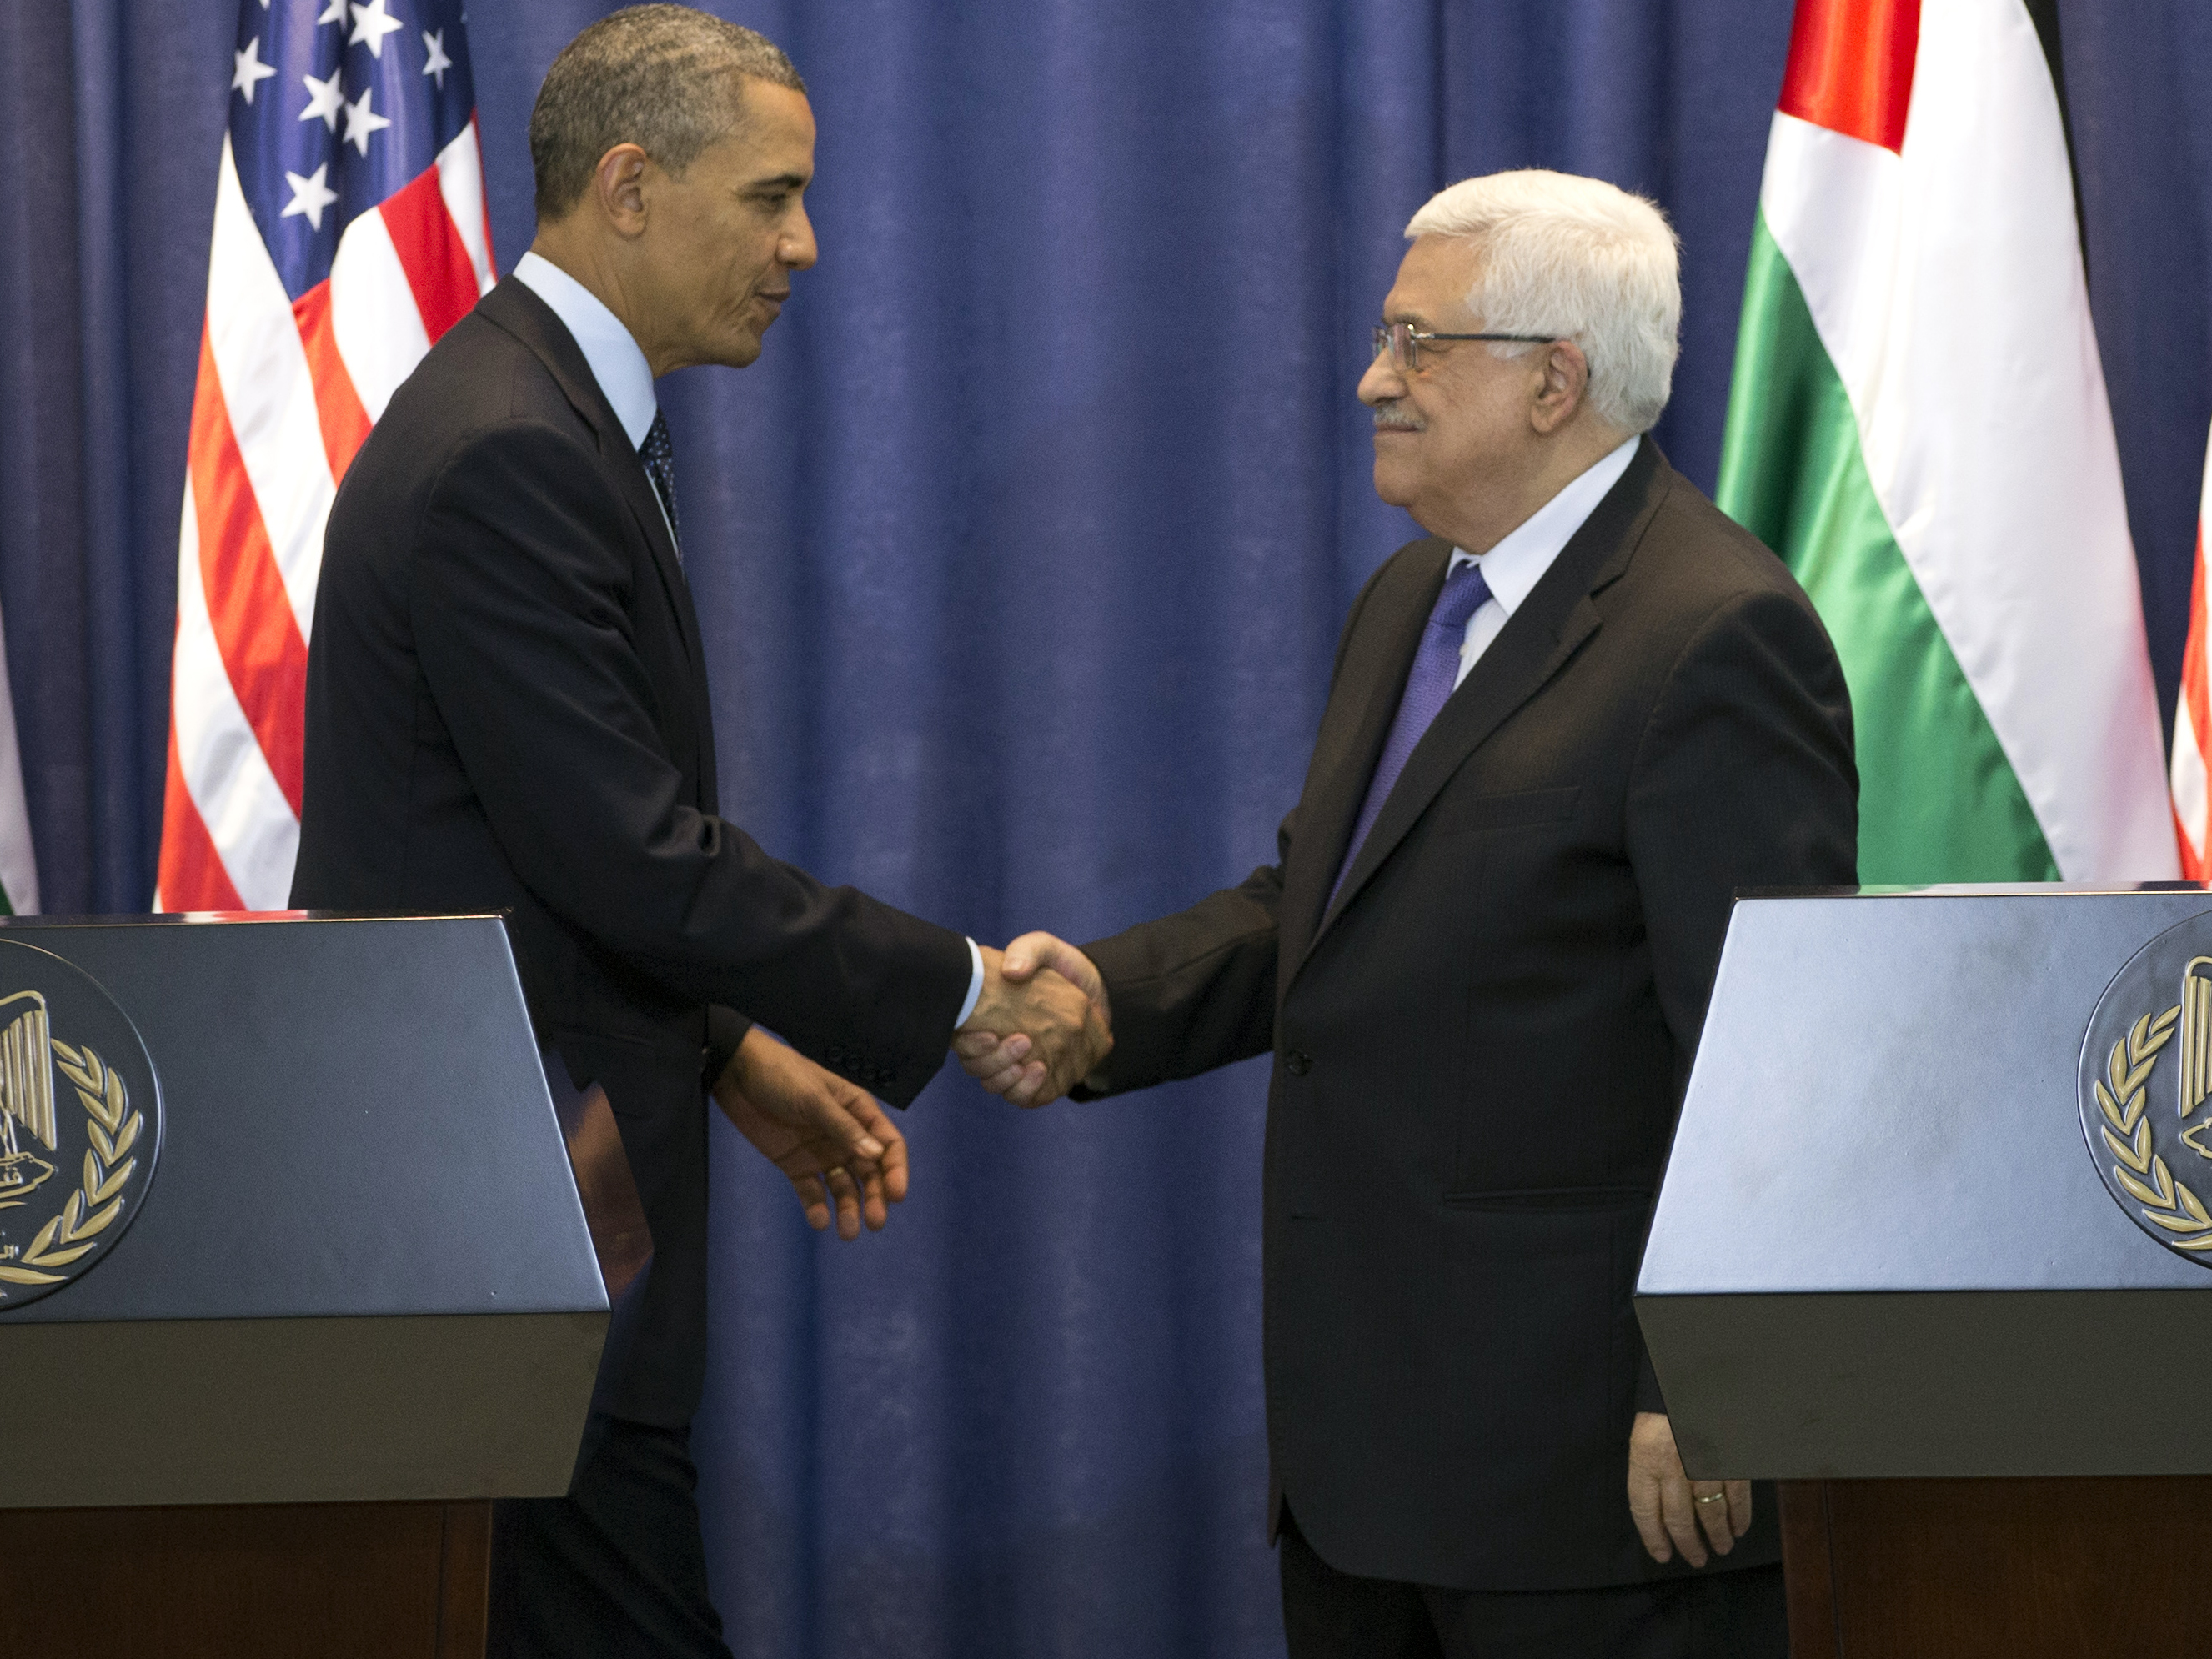 President Obama Resume Obama Pushes For Mideast Peace Talks To Resume Cbs News